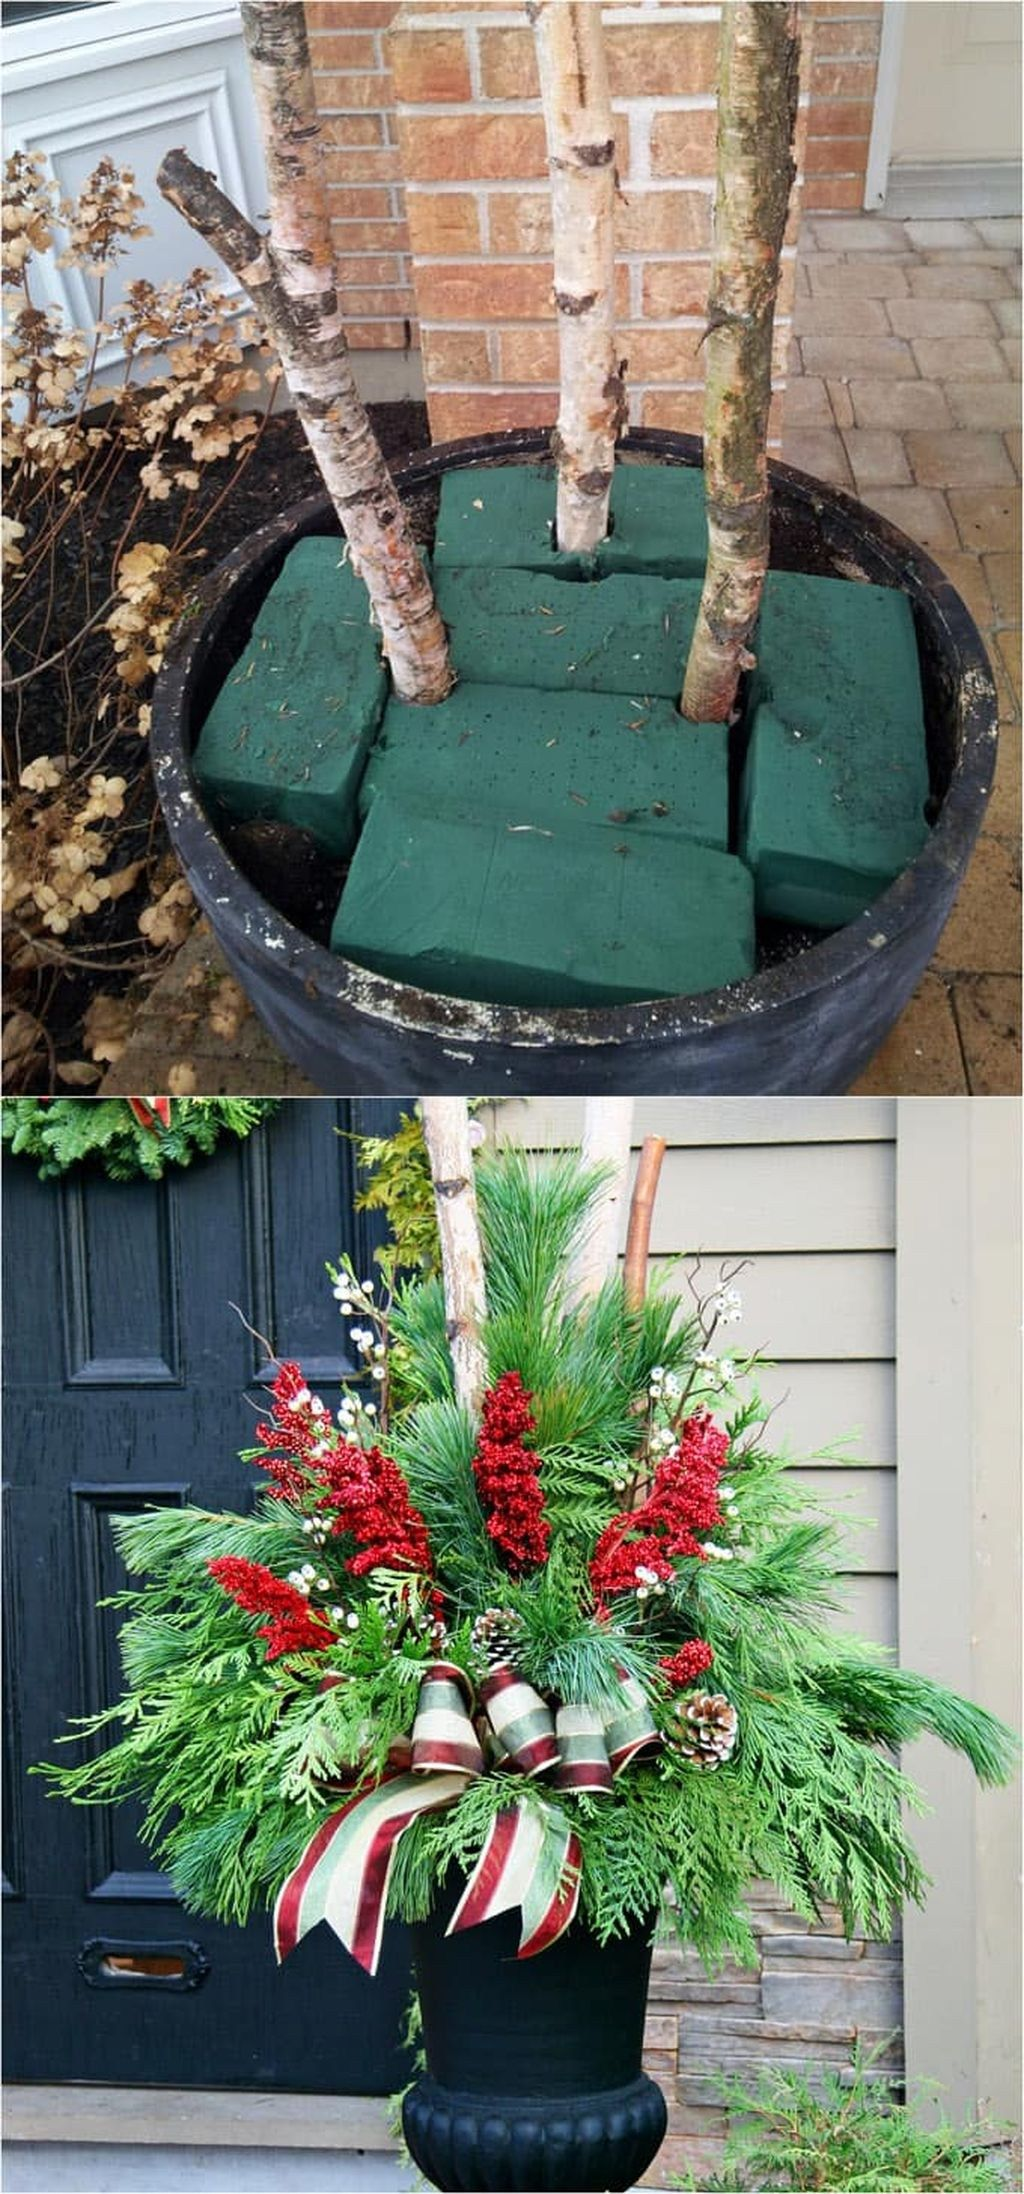 Cheap But Stunning Outdoor Christmas Decorations Ideas 68 | Outdoor ...